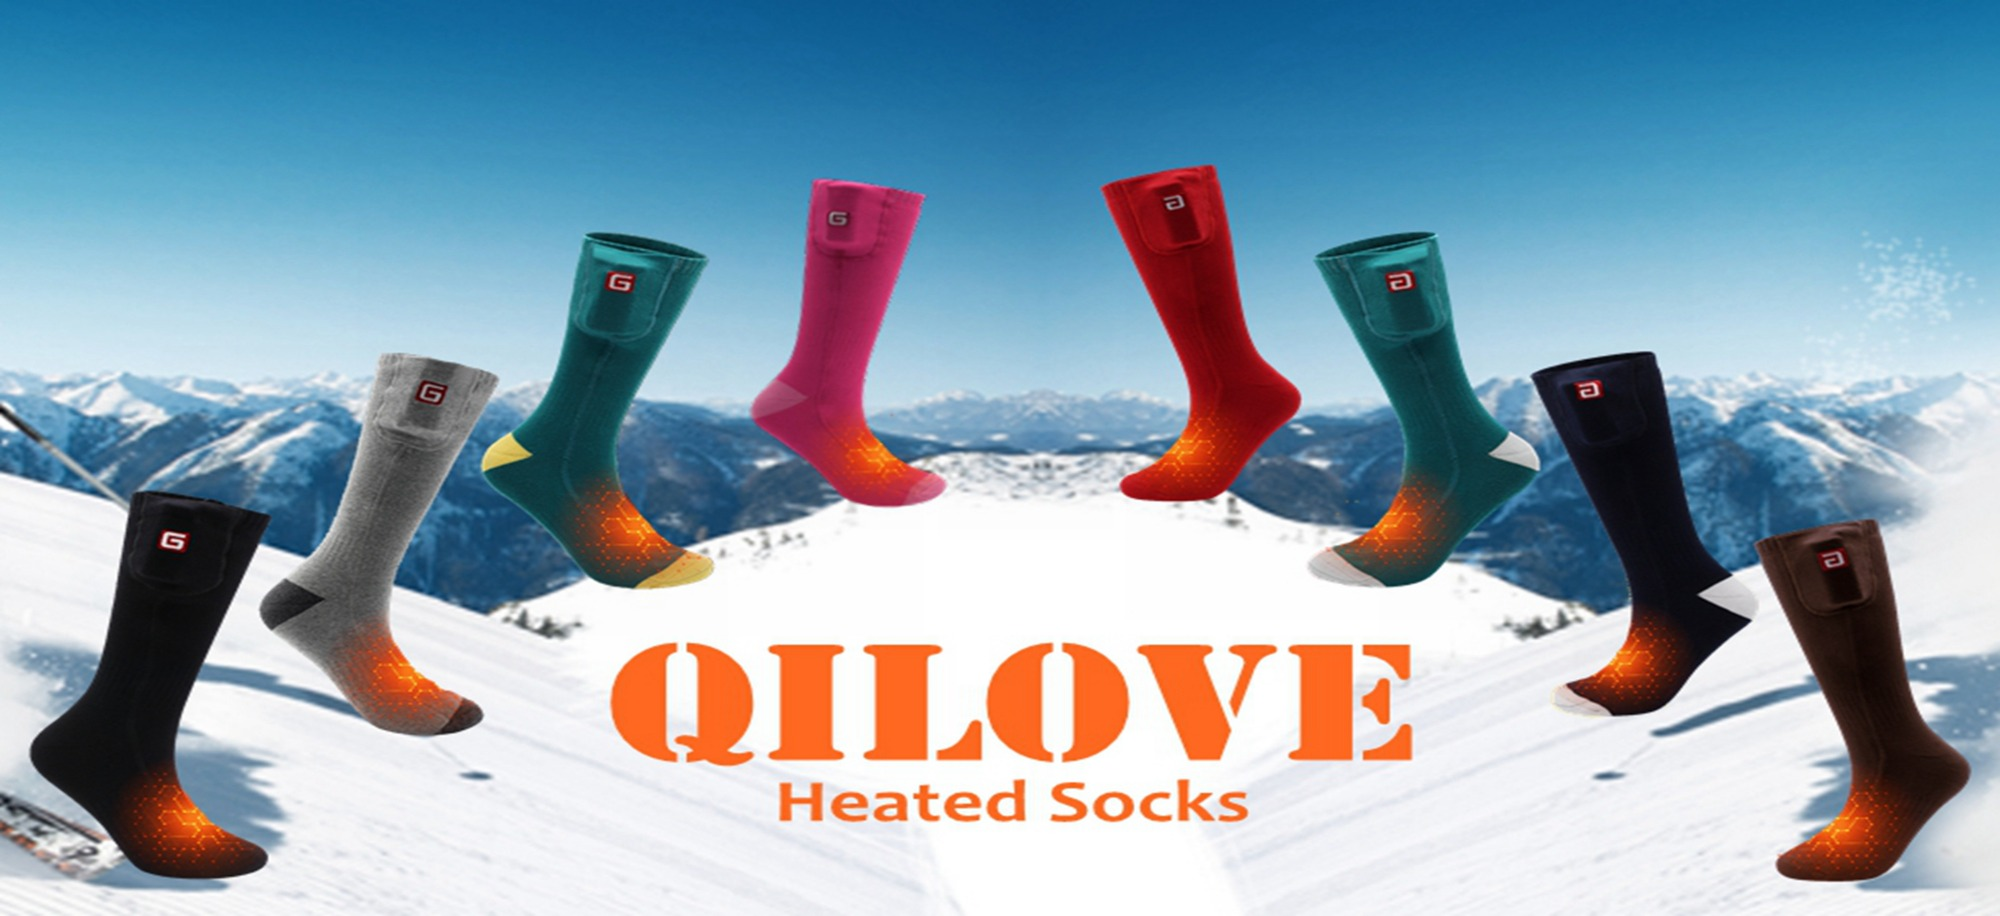 HEATED SCOKS FOR WINTER LIFE